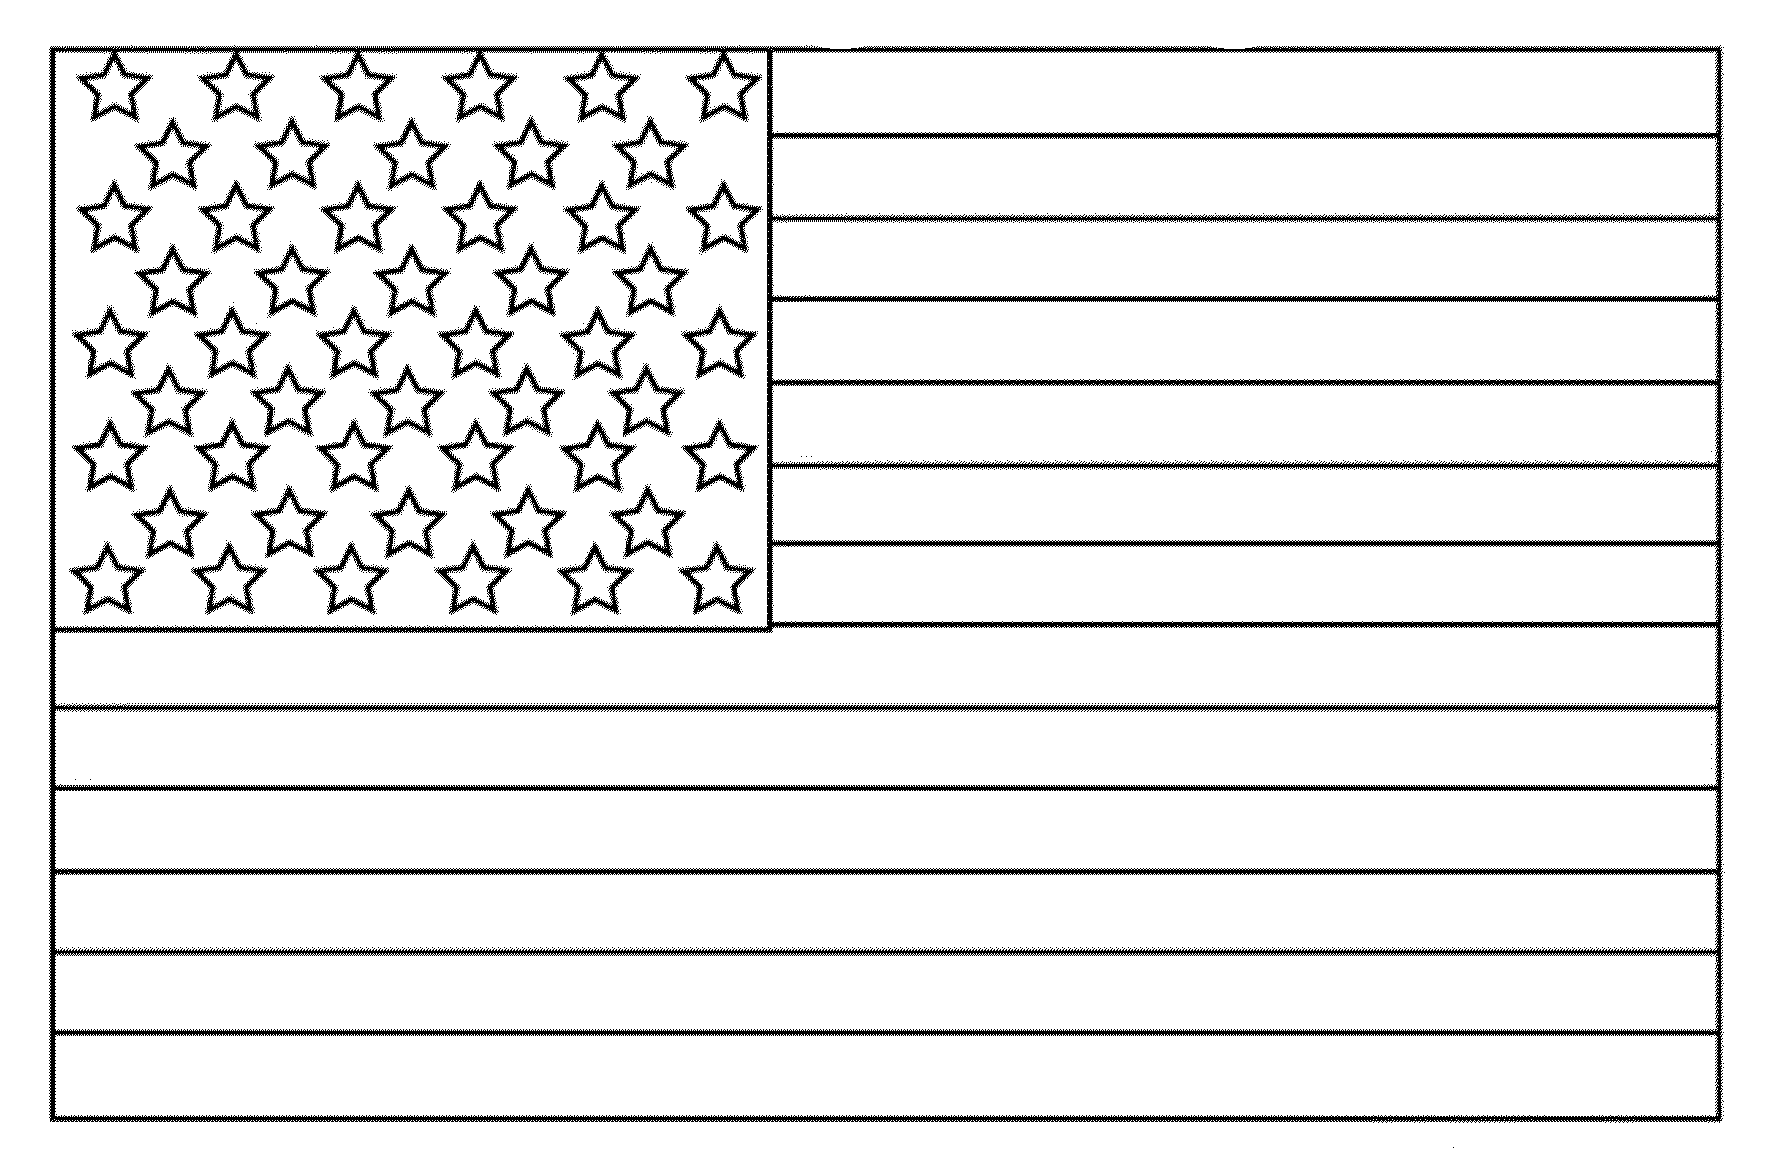 free printable american flag coloring sheets american flag coloring pages best coloring pages for kids free sheets flag american coloring printable